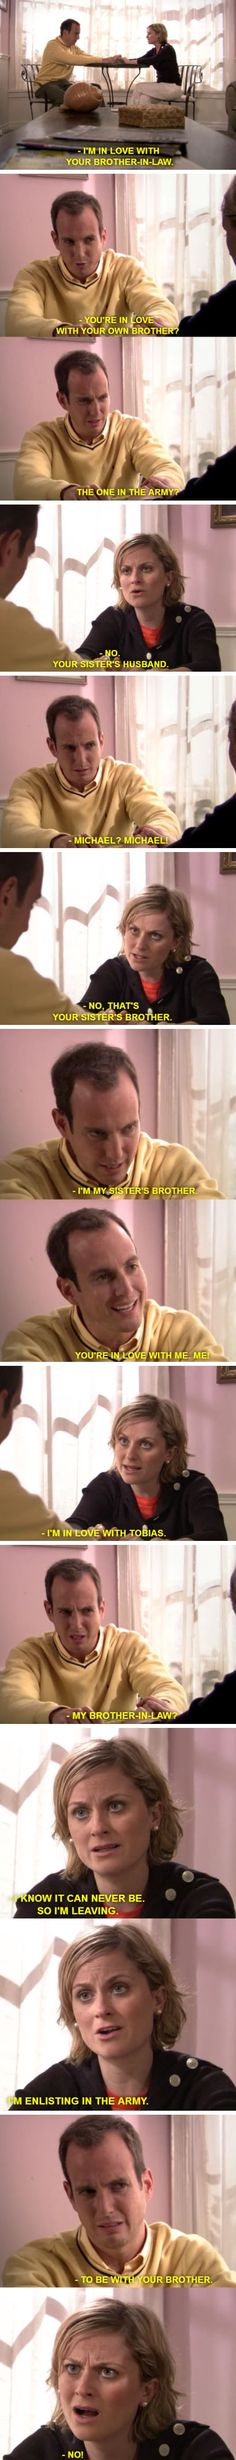 29 Jokes From Arrested Development That Will Never Not Be Funny